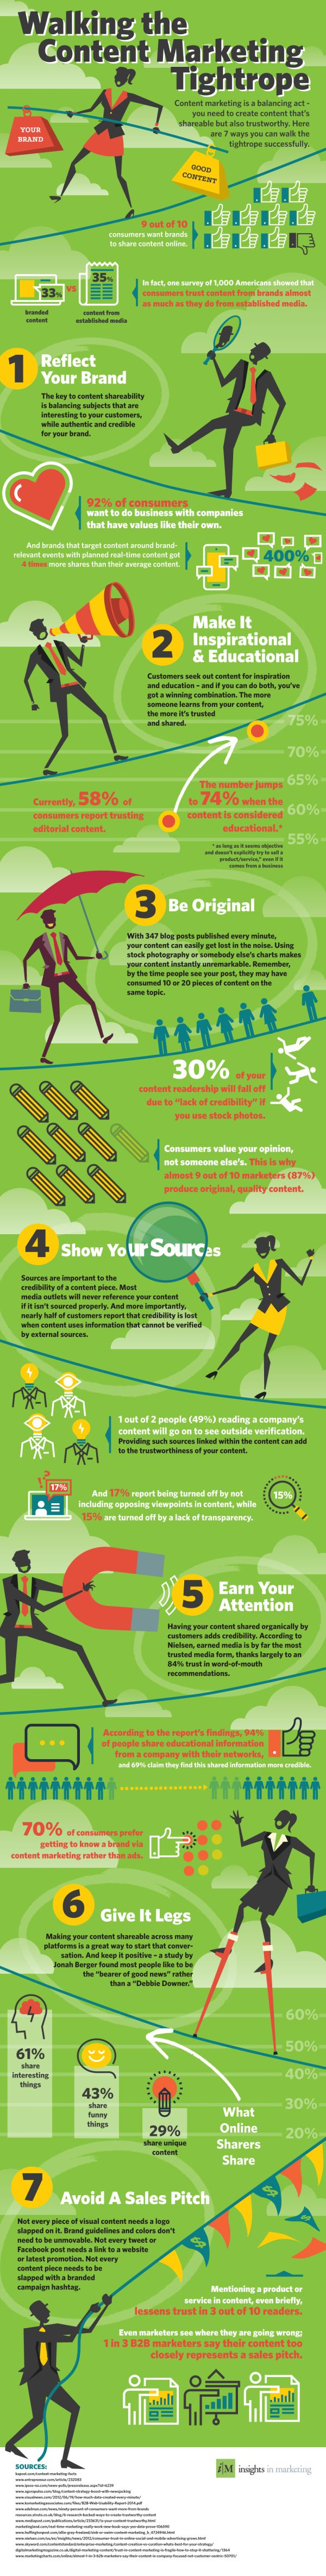 What Are 7 Ways To Balance The Tightrope Of Content Marketing? #infographic